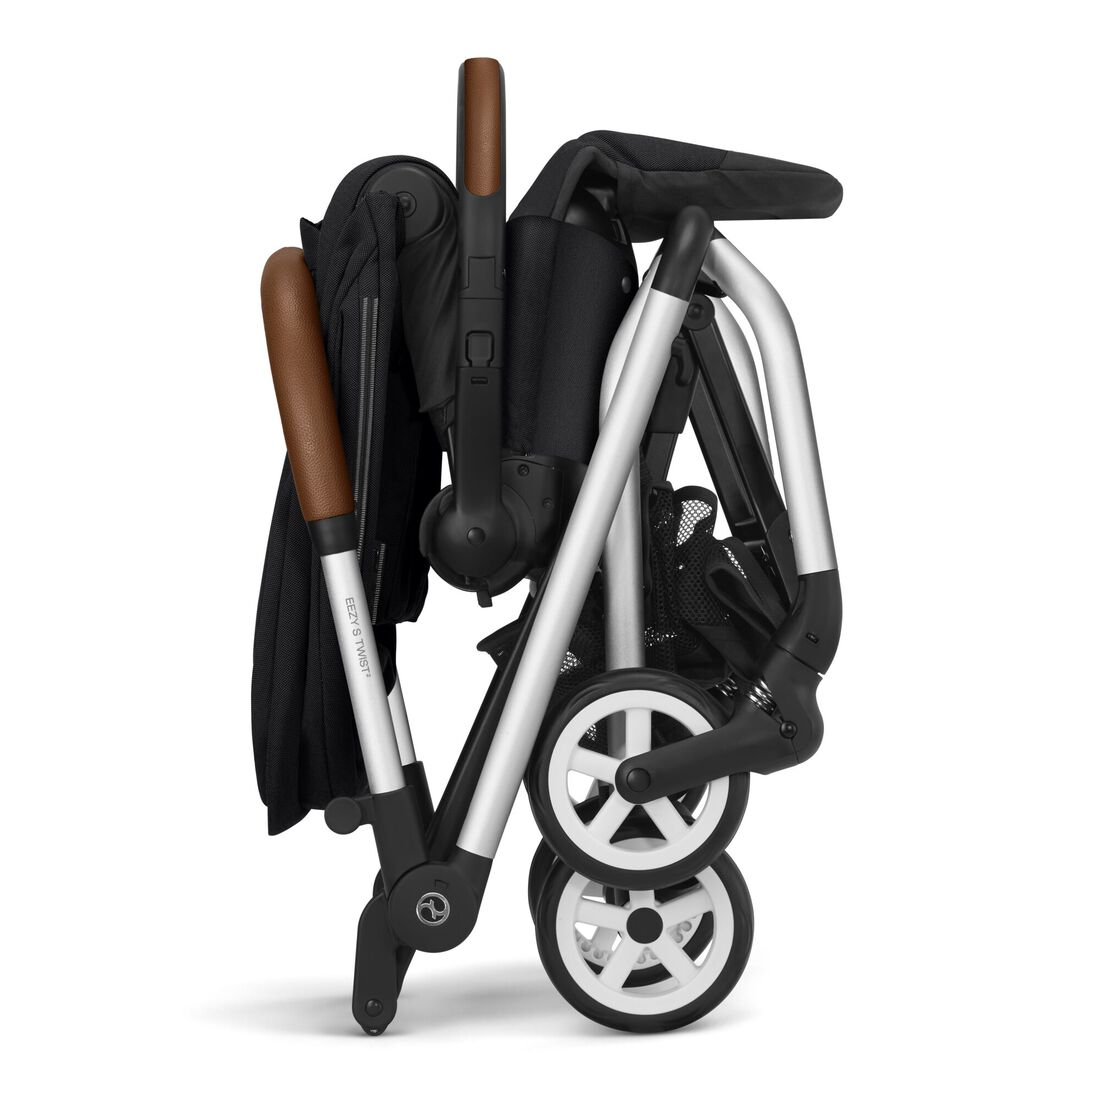 CYBEX Eezy S Twist 2 - Deep Black (Silberner Rahmen) in Deep Black (Silver Frame) large Bild 5